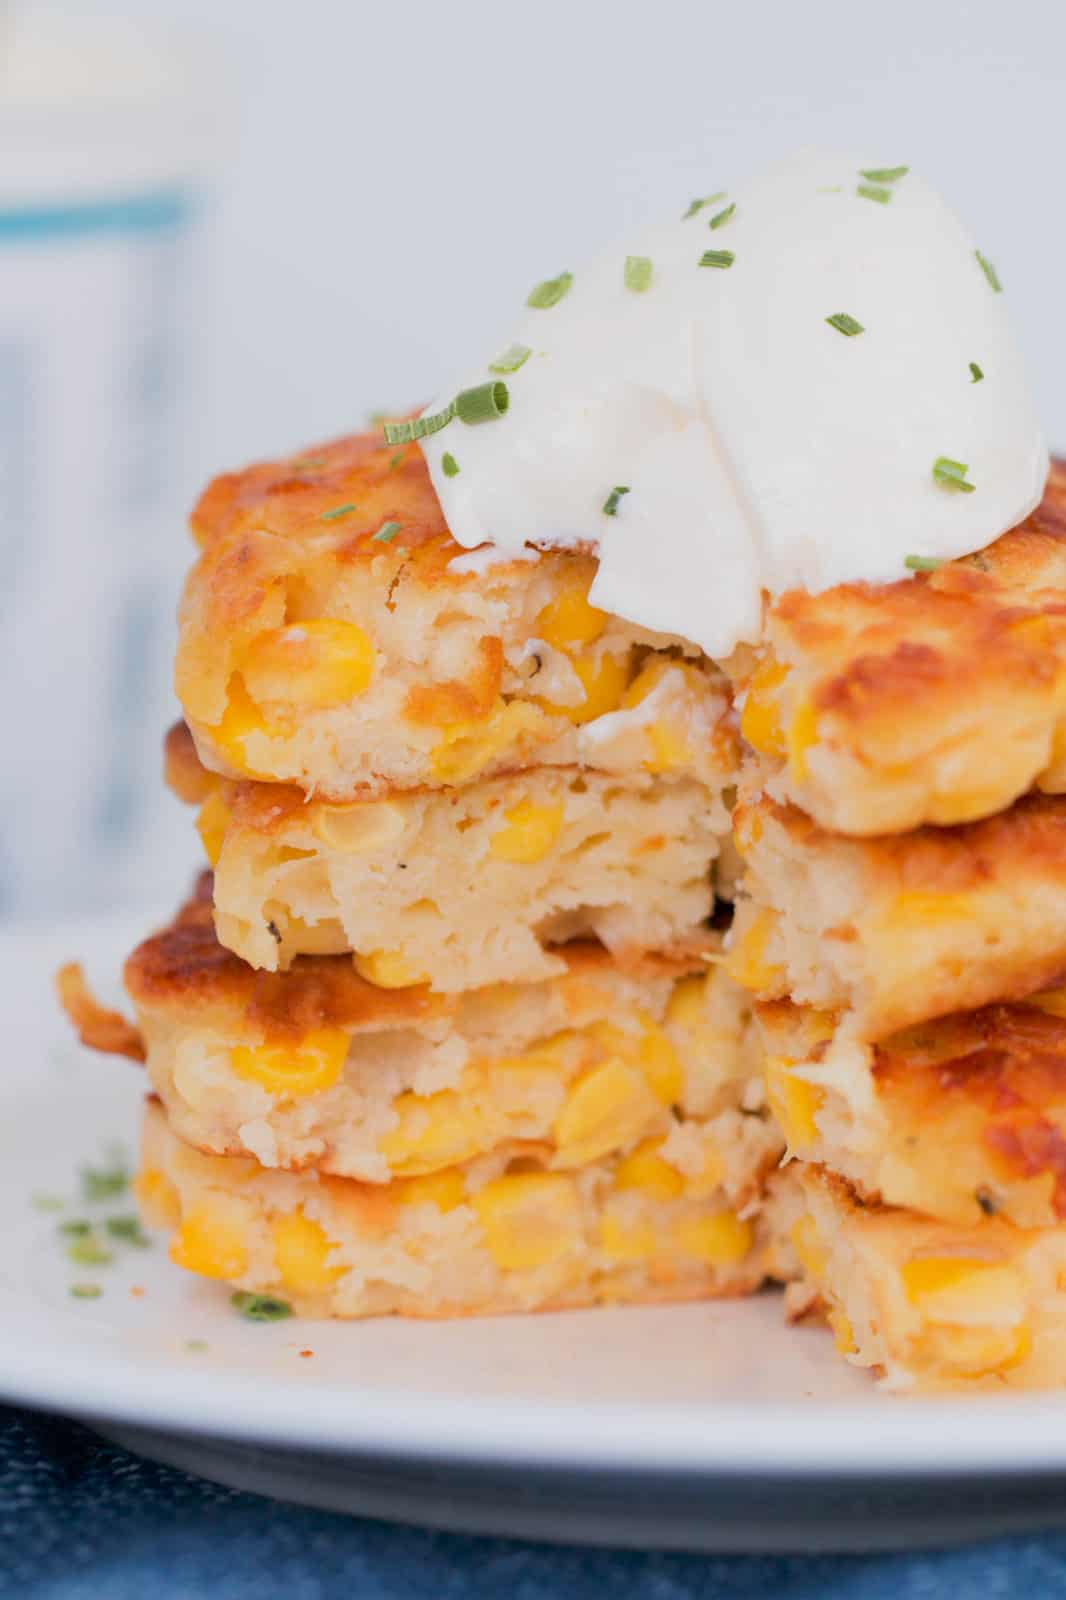 Fluffy corn fritters, cut through the middle with sour cream and chives on top.